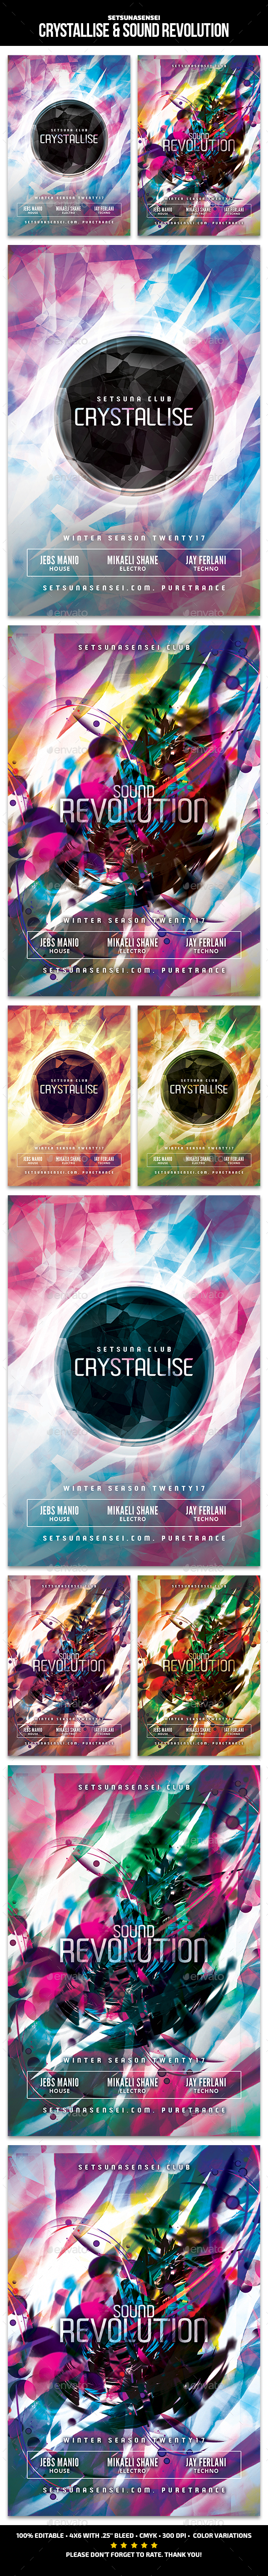 Crystallise & Sound Revolution - Clubs & Parties Events